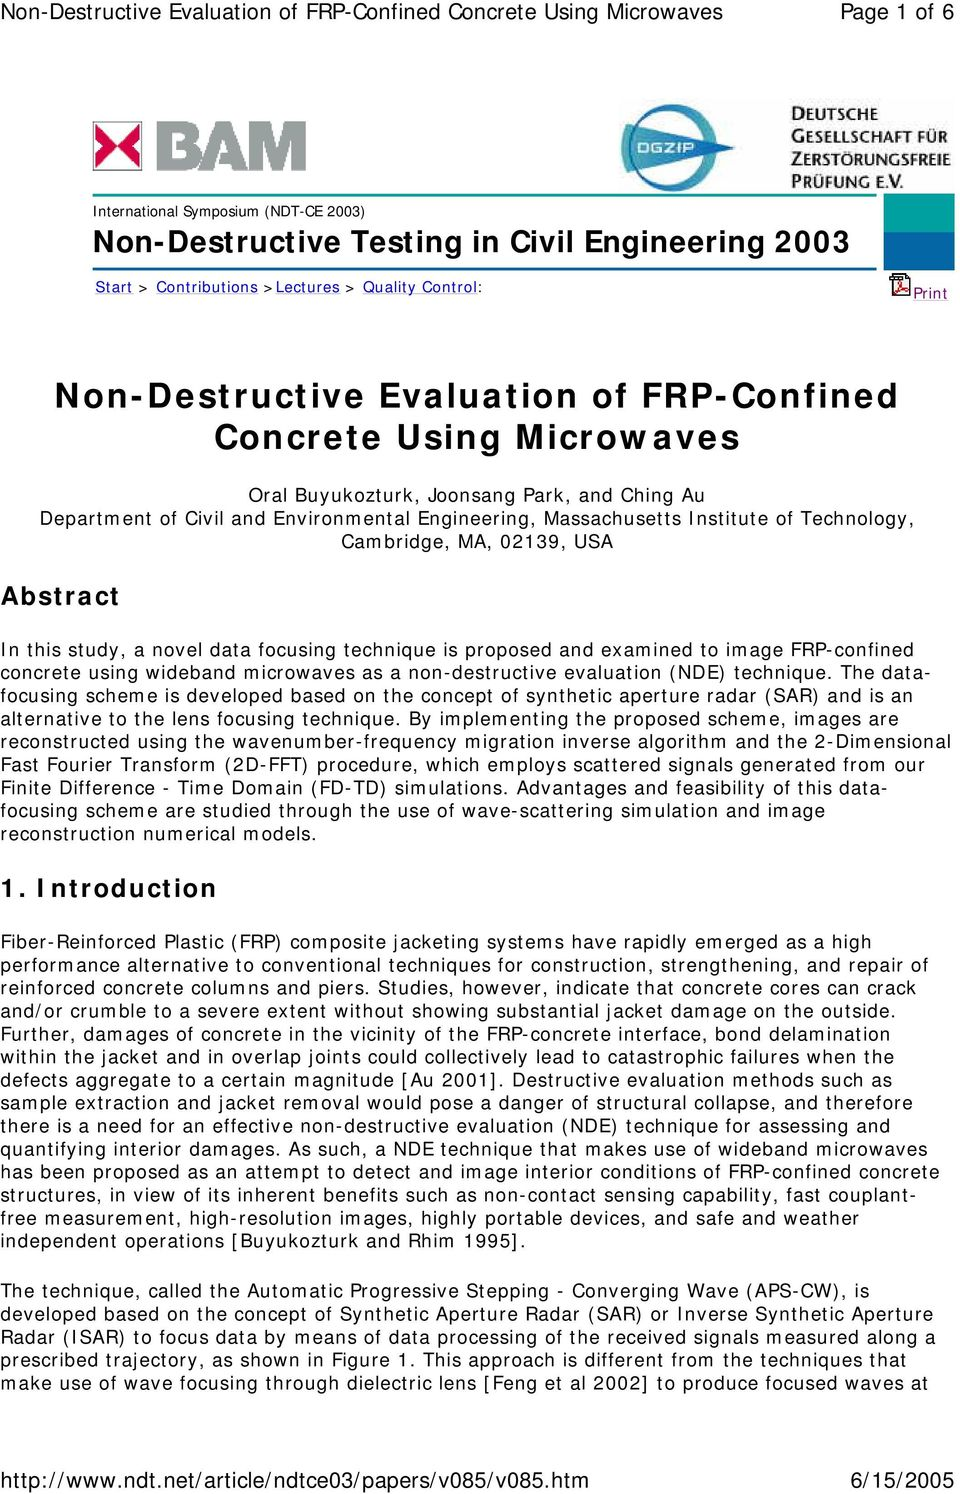 this study, a novel data focusing technique is proposed and examined to image FRP-confined concrete using wideband microwaves as a non-destructive evaluation (NDE) technique.